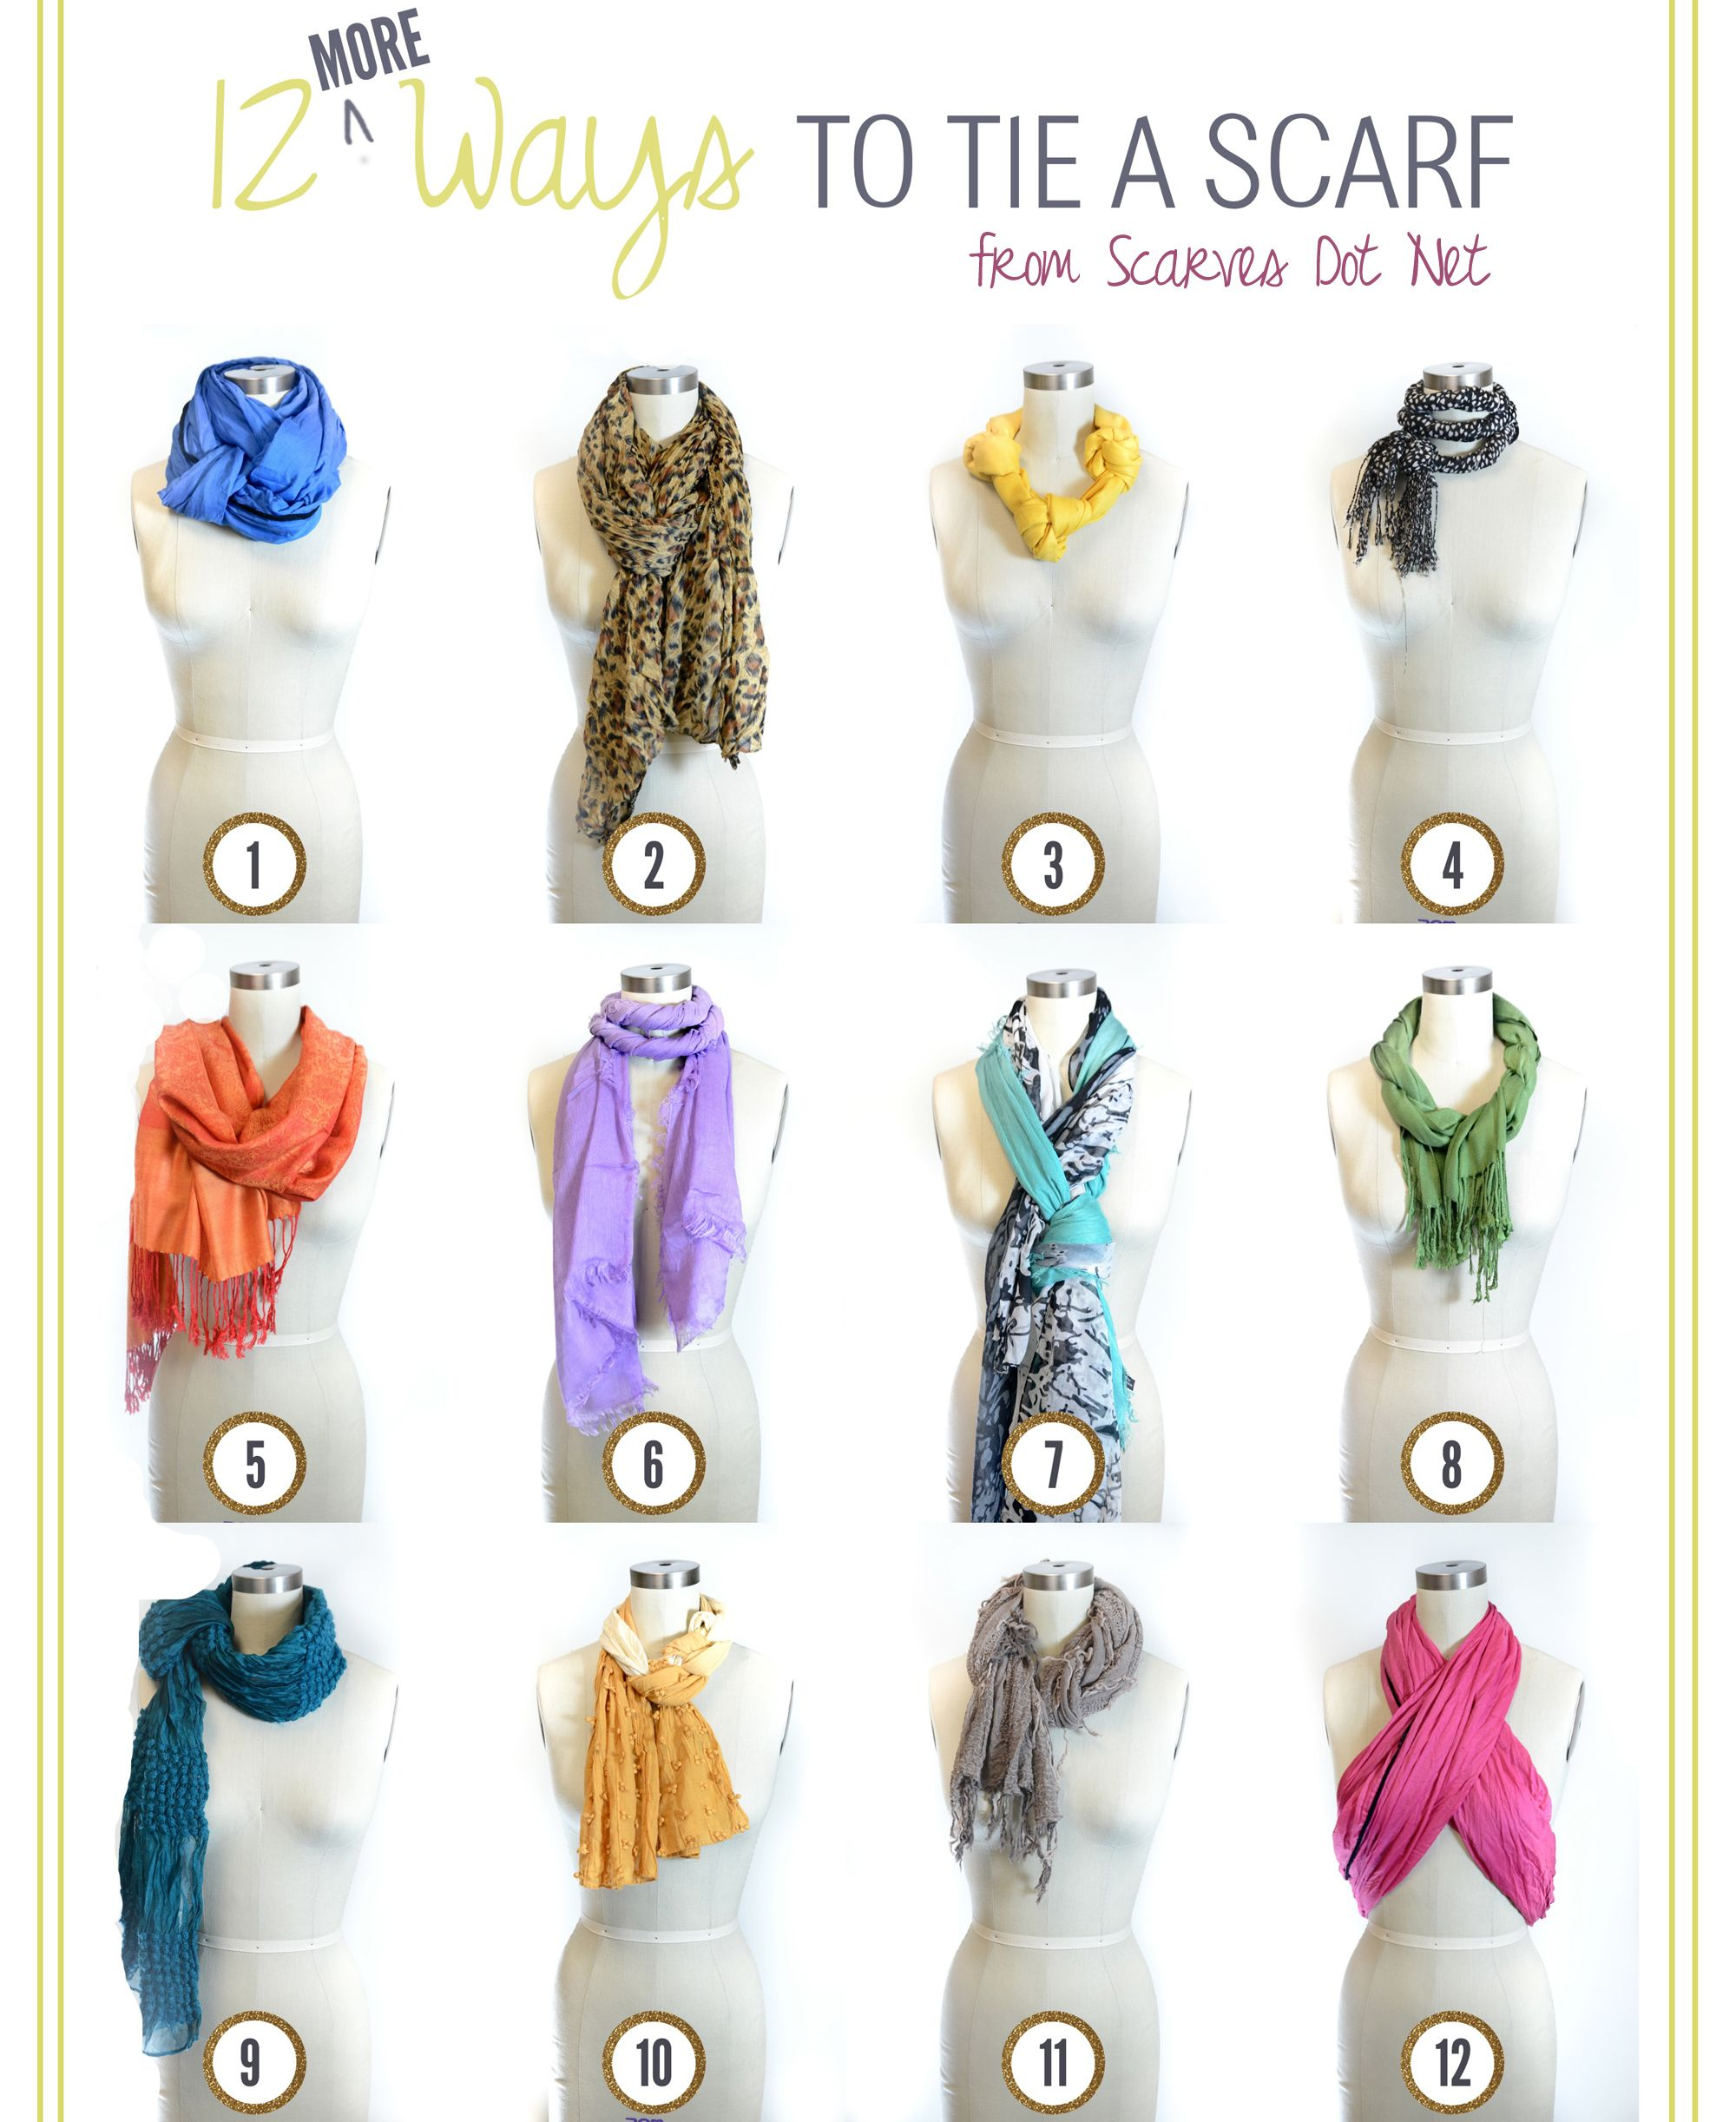 12 more ways to tie a scarf scarves